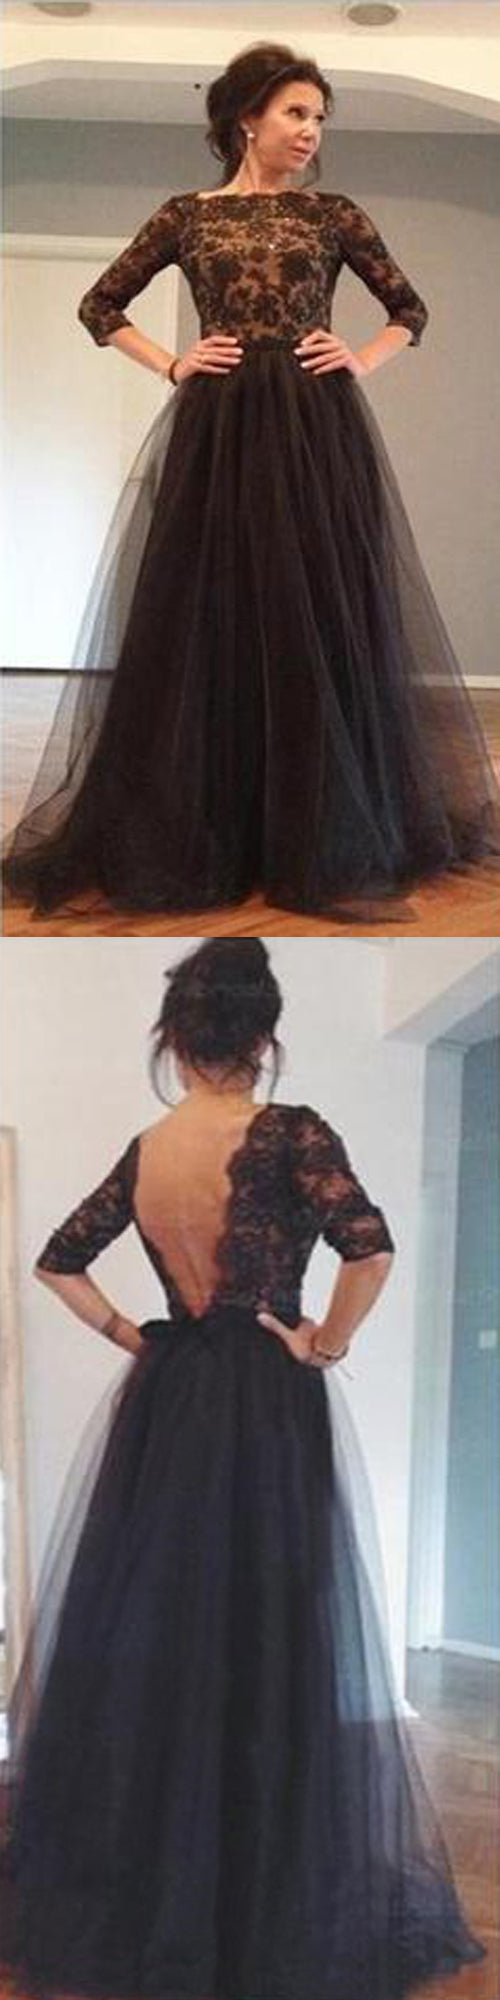 Elegant Half Sleeve Black Lace Top Tulle Skirt Sexy Backless Ball Gown Evening Party Prom Dress, PD0015